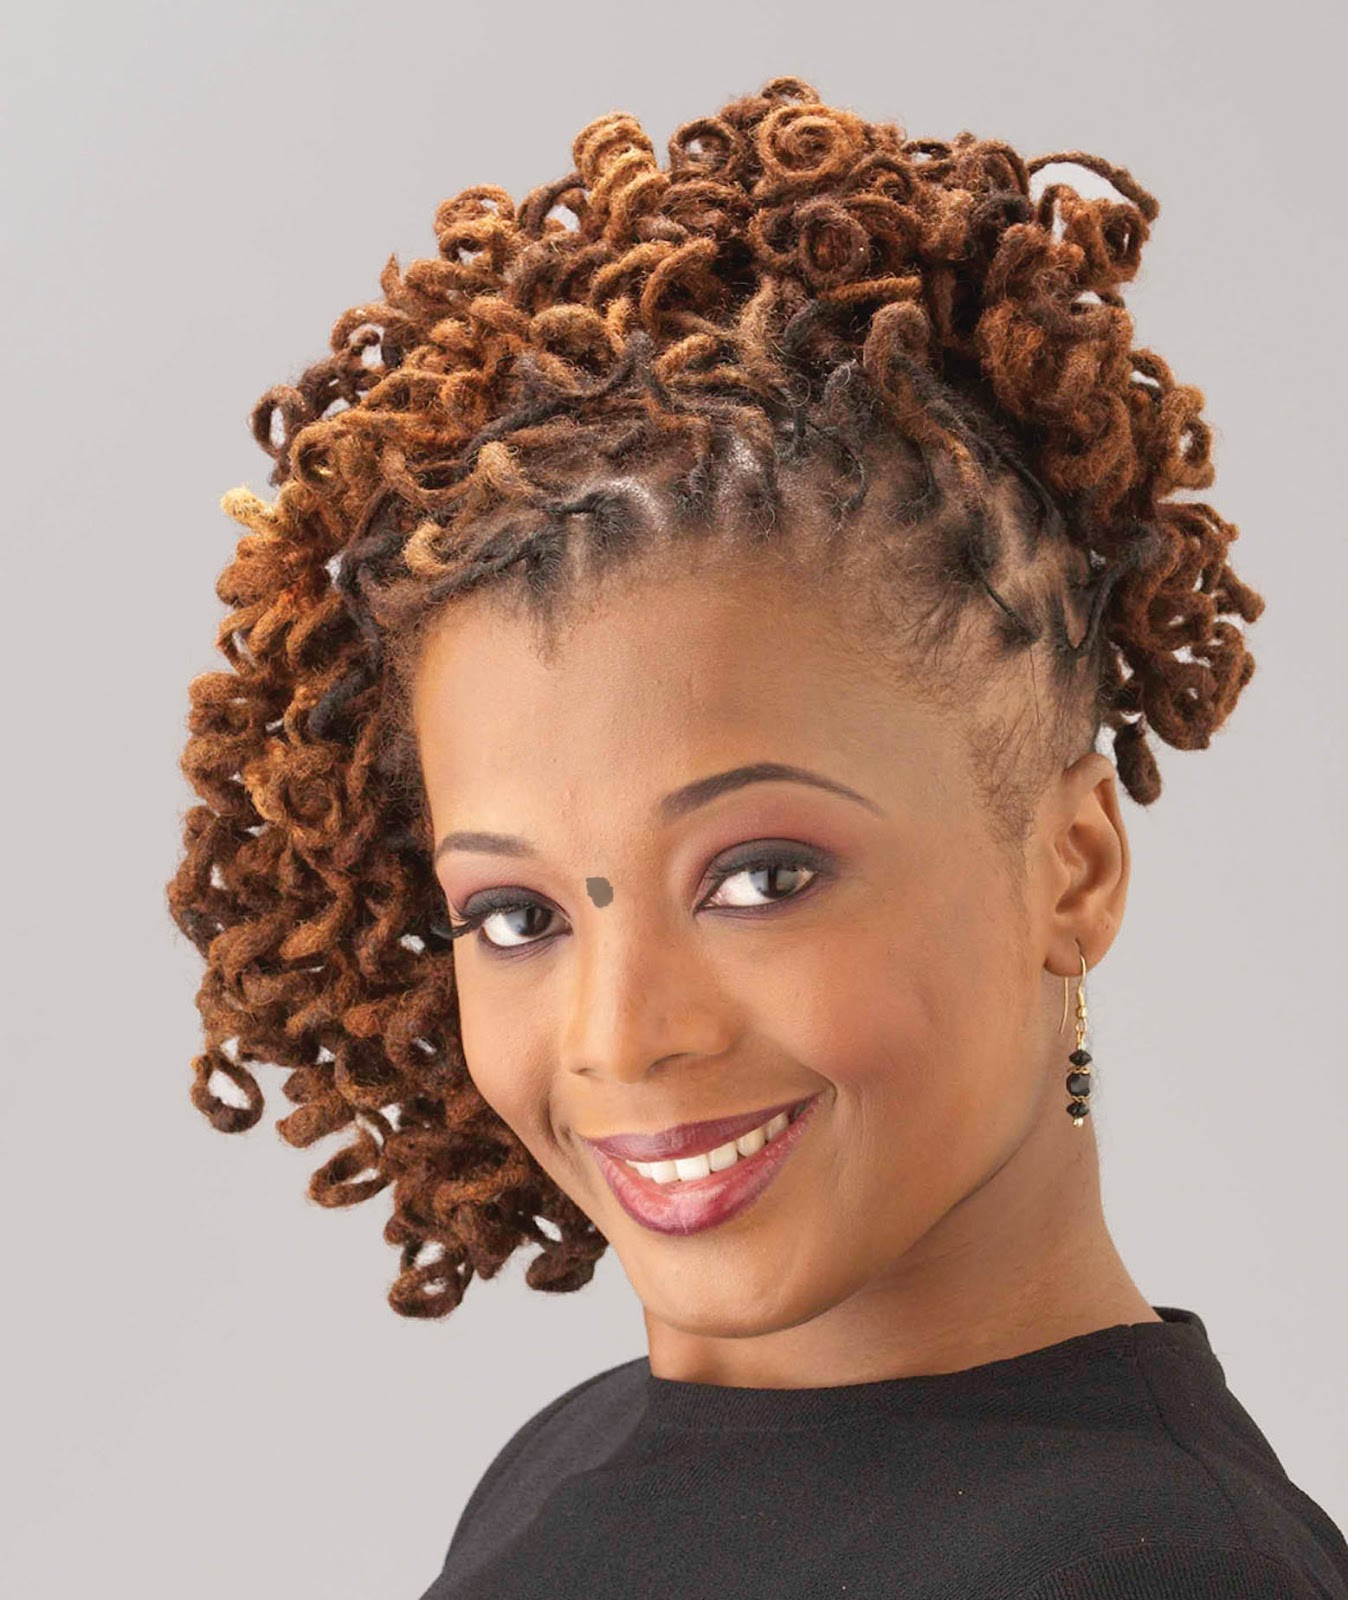 Surprising Wedding Hairstyles For Black Women That Will Turn Heads Hairstyles For Men Maxibearus